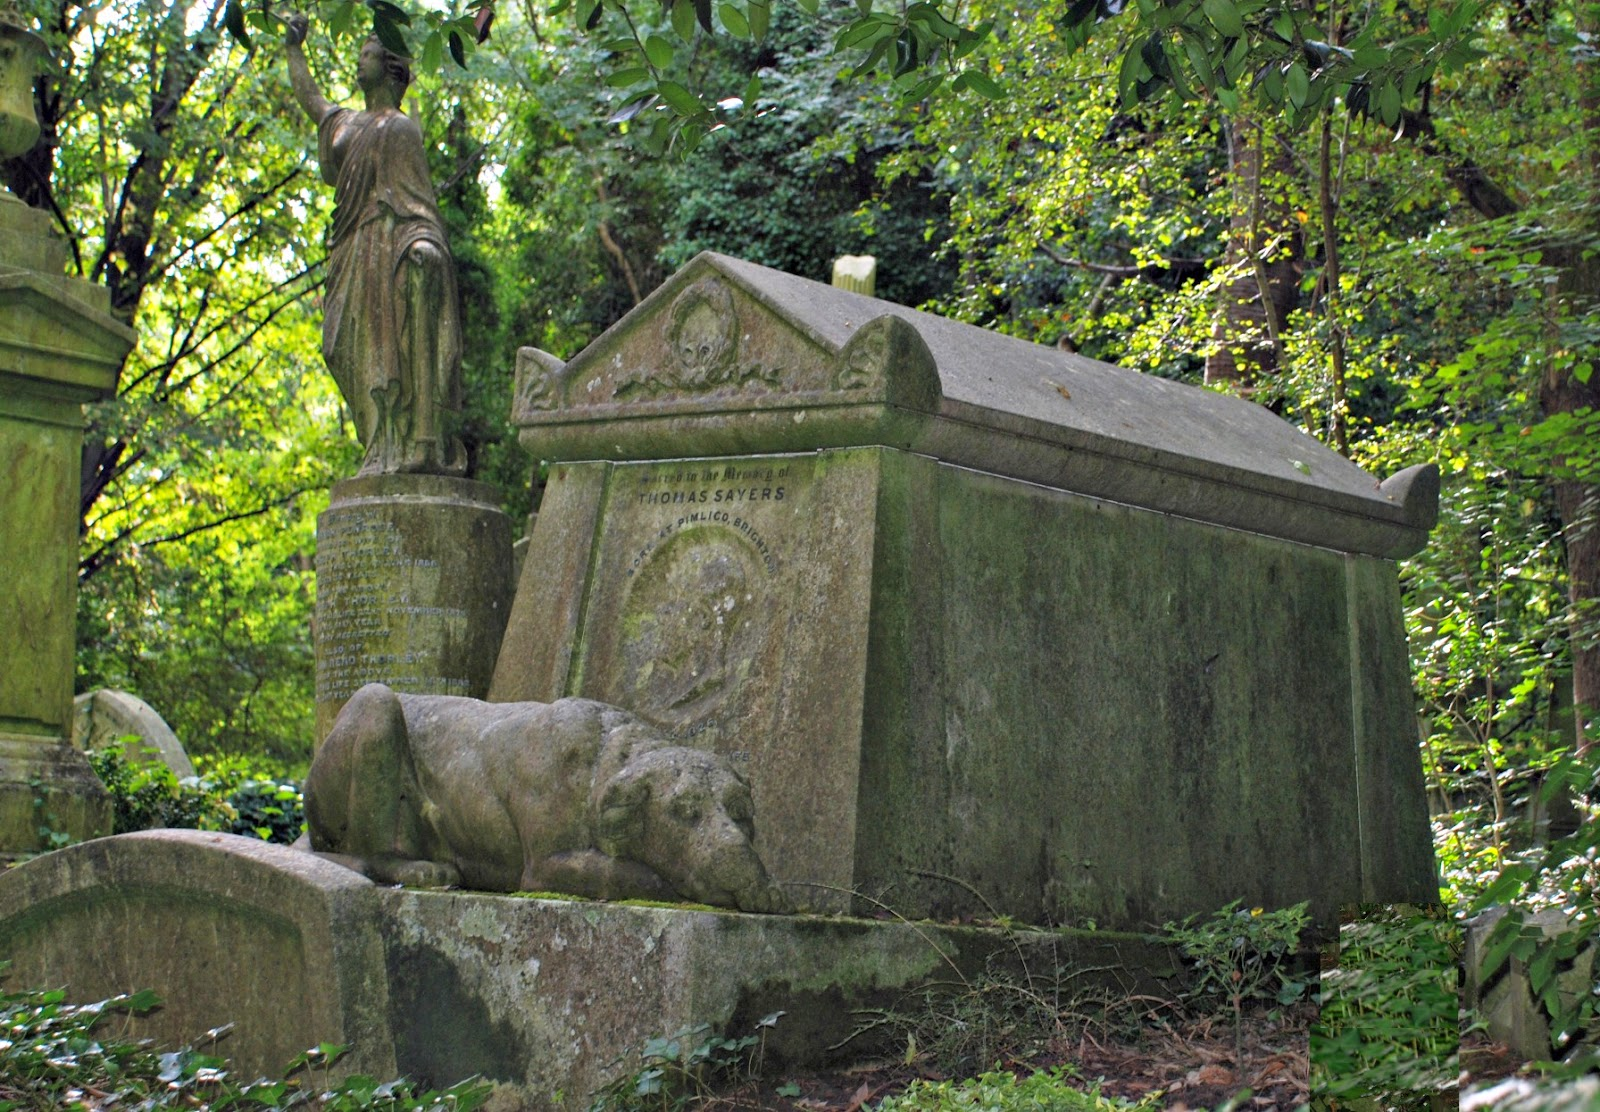 Thomas Sayers' memorial, Highgate Cemetery, London